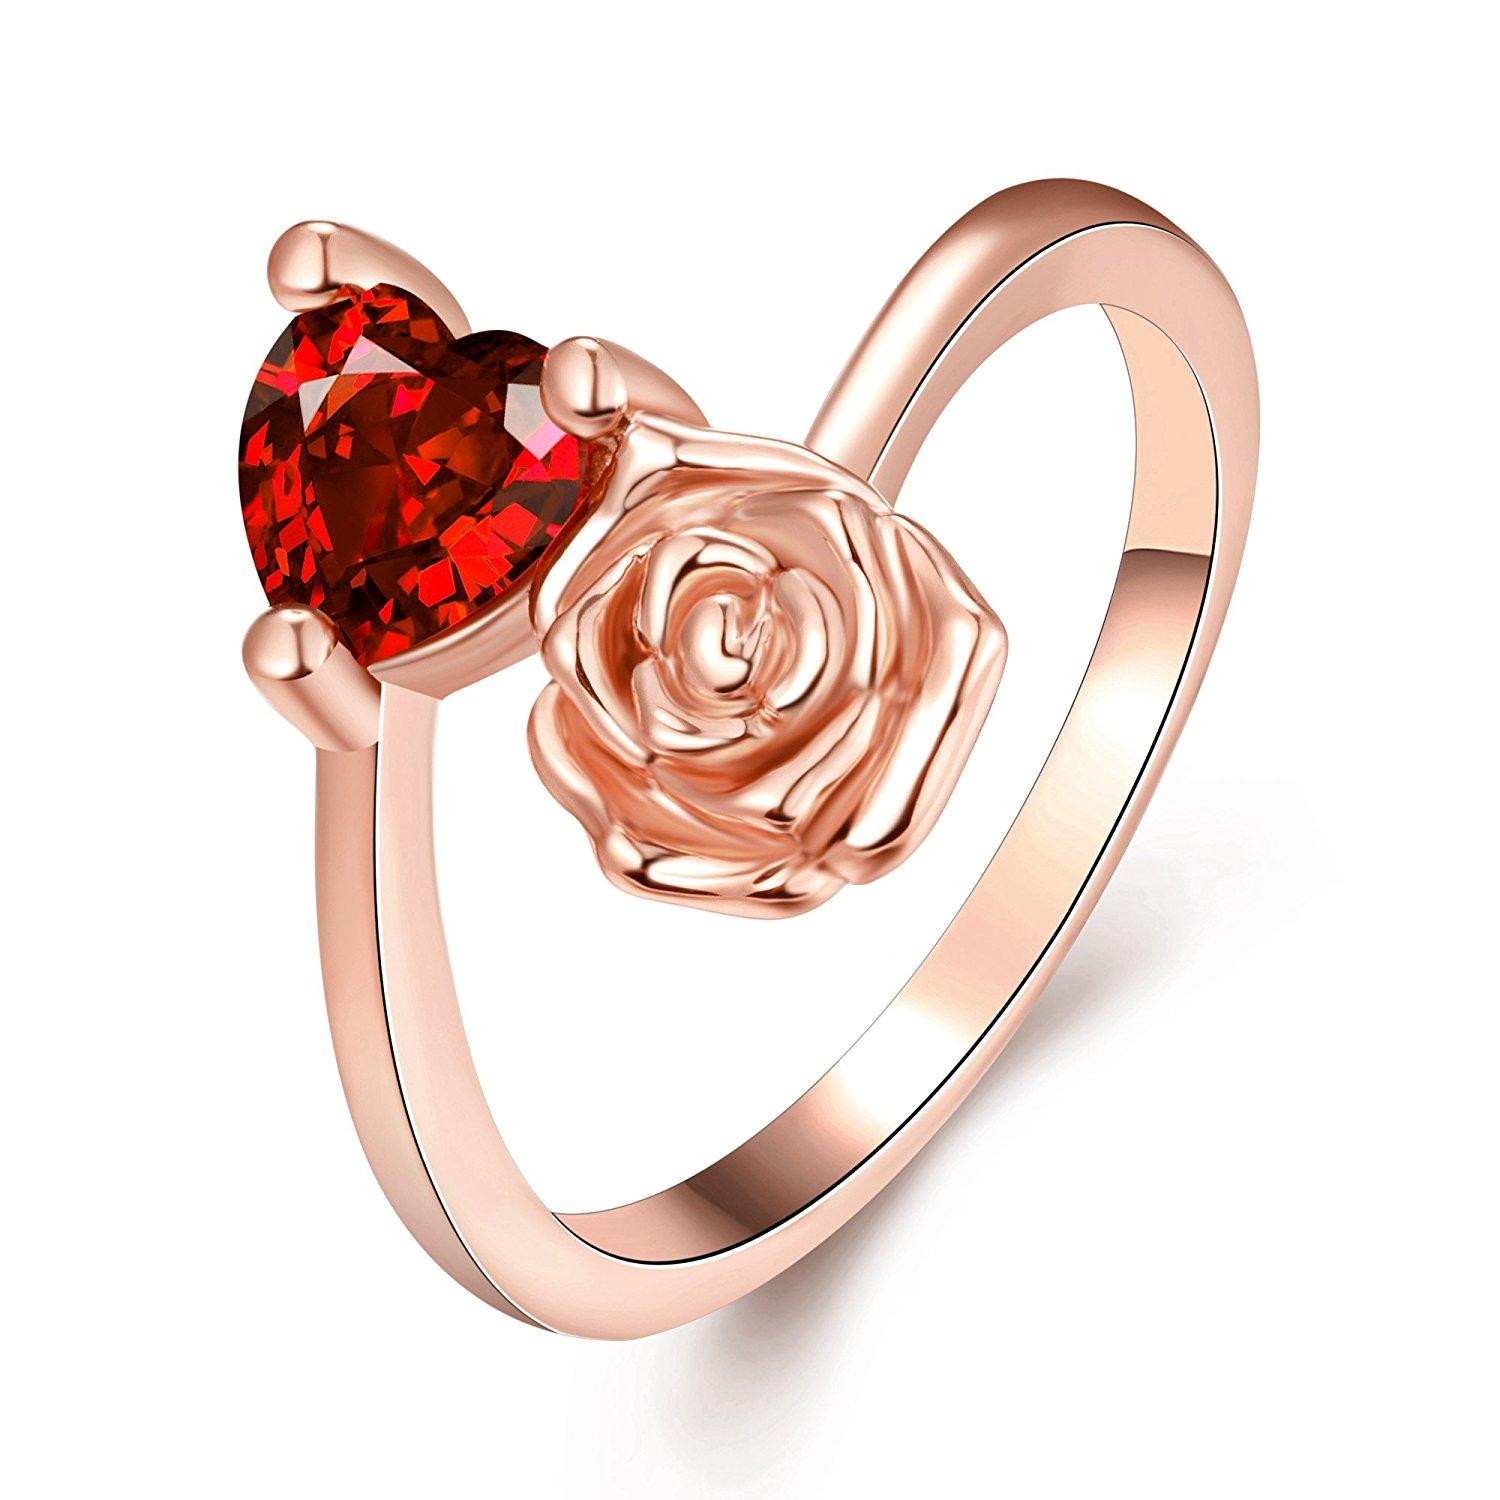 Godyce Heart Rose Ring for Women Size 7-8 Ruby Rose Gold/White Gold ...